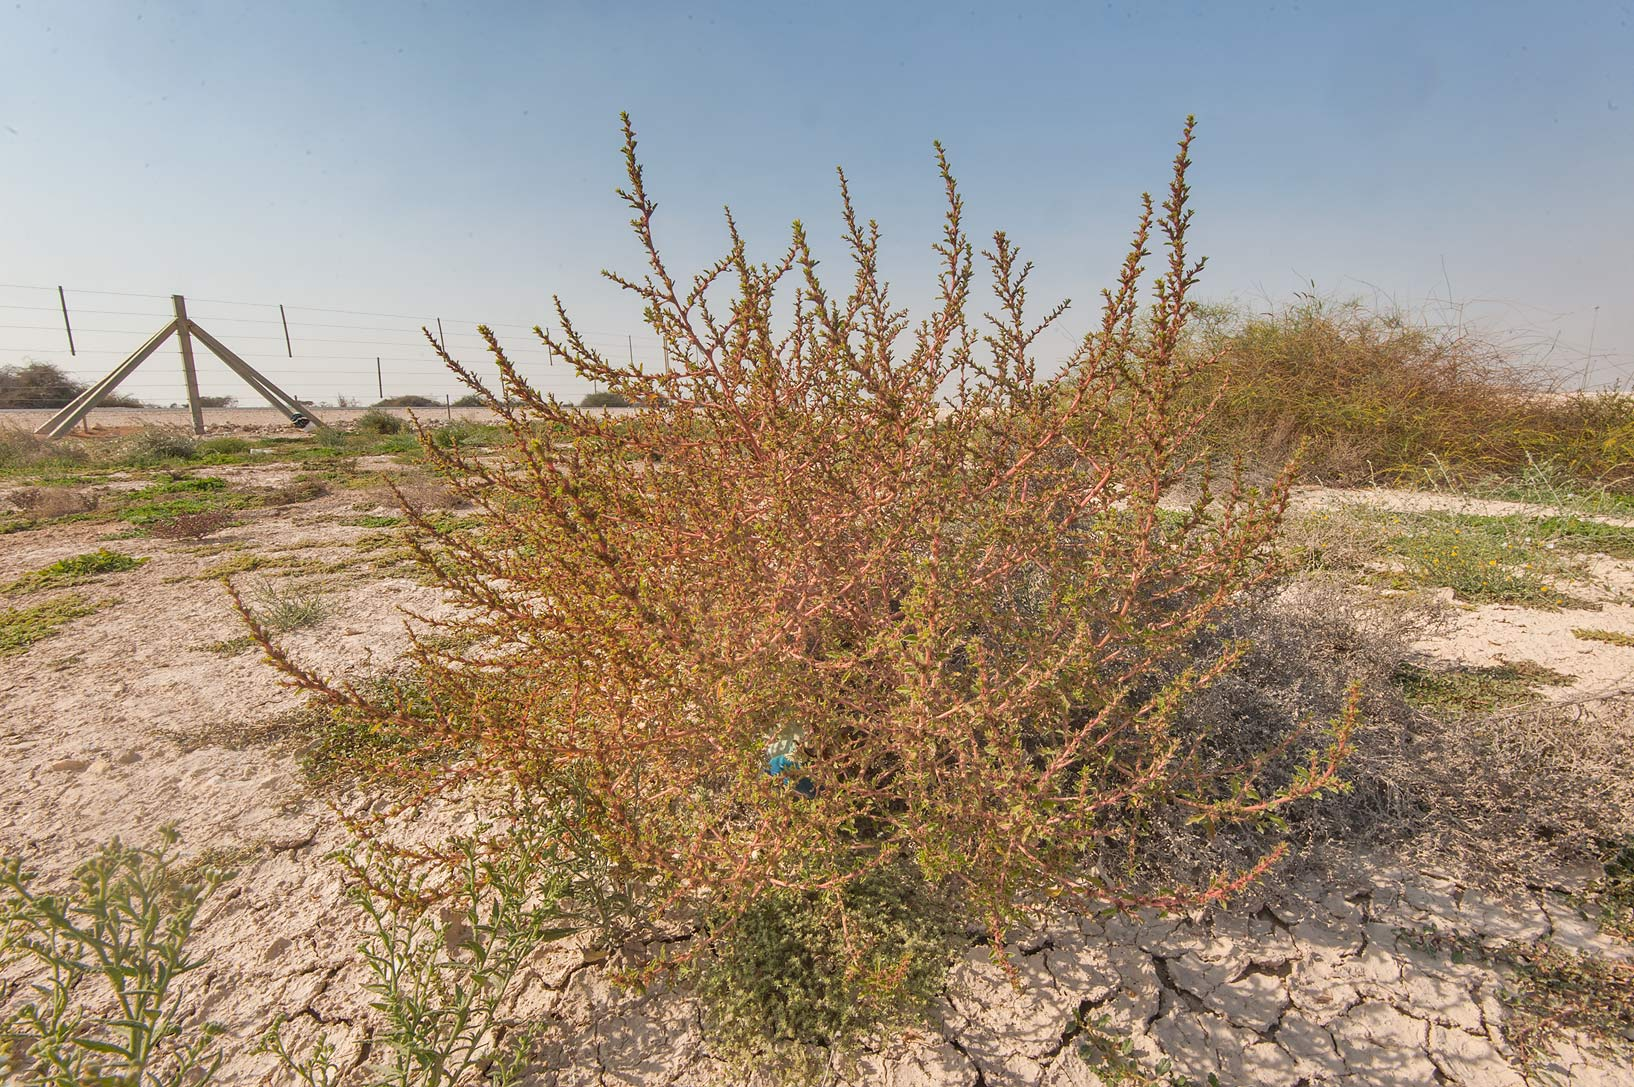 Reddish plant of common tumbleweed (Amaranthus...Highway near Ash-Shahaniyah. Qatar